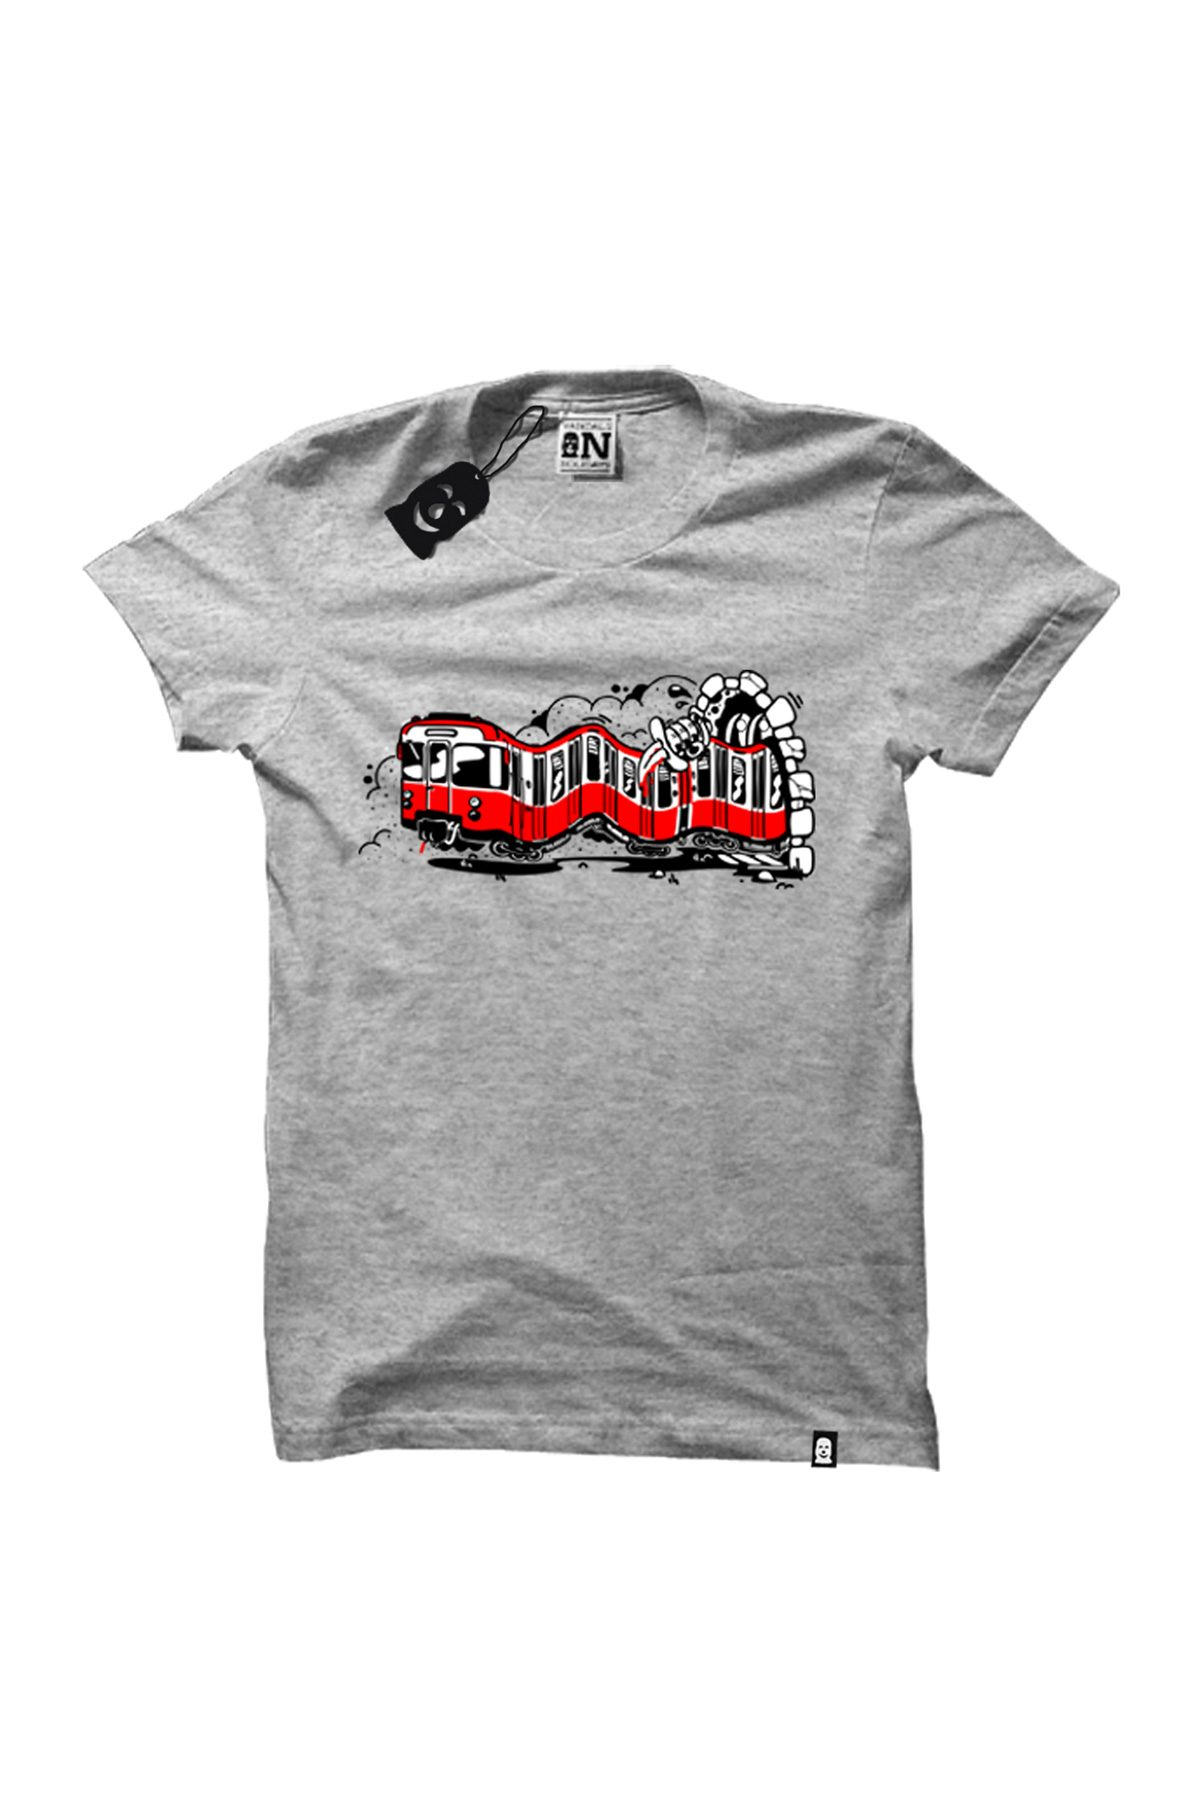 Vandals On Holidays MILAN METRO T-Shirt